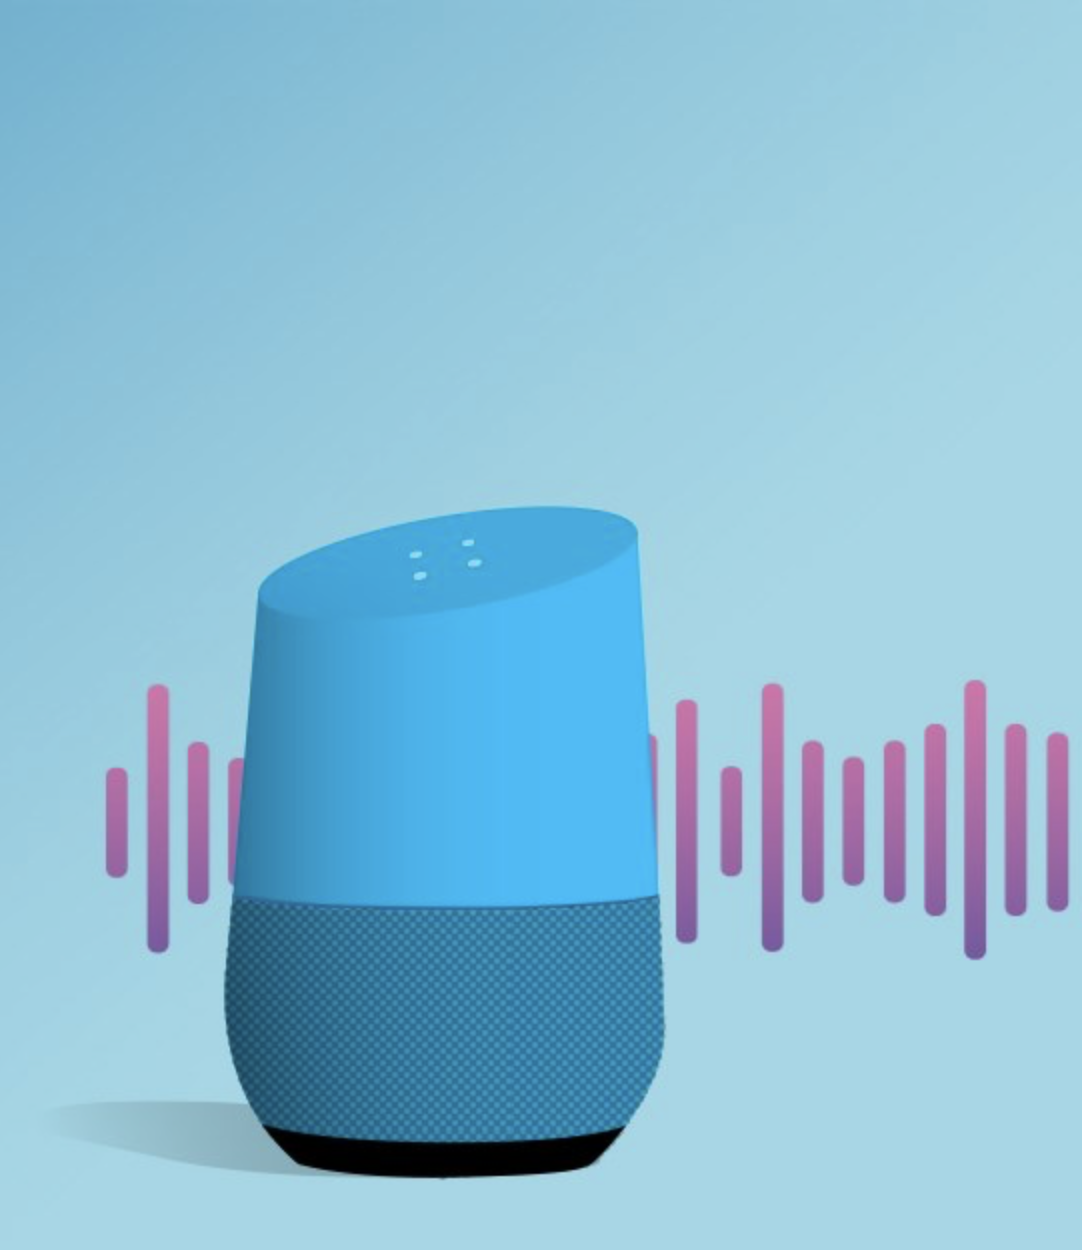 Conversational interfaces, voice & smart speakers. Our future?